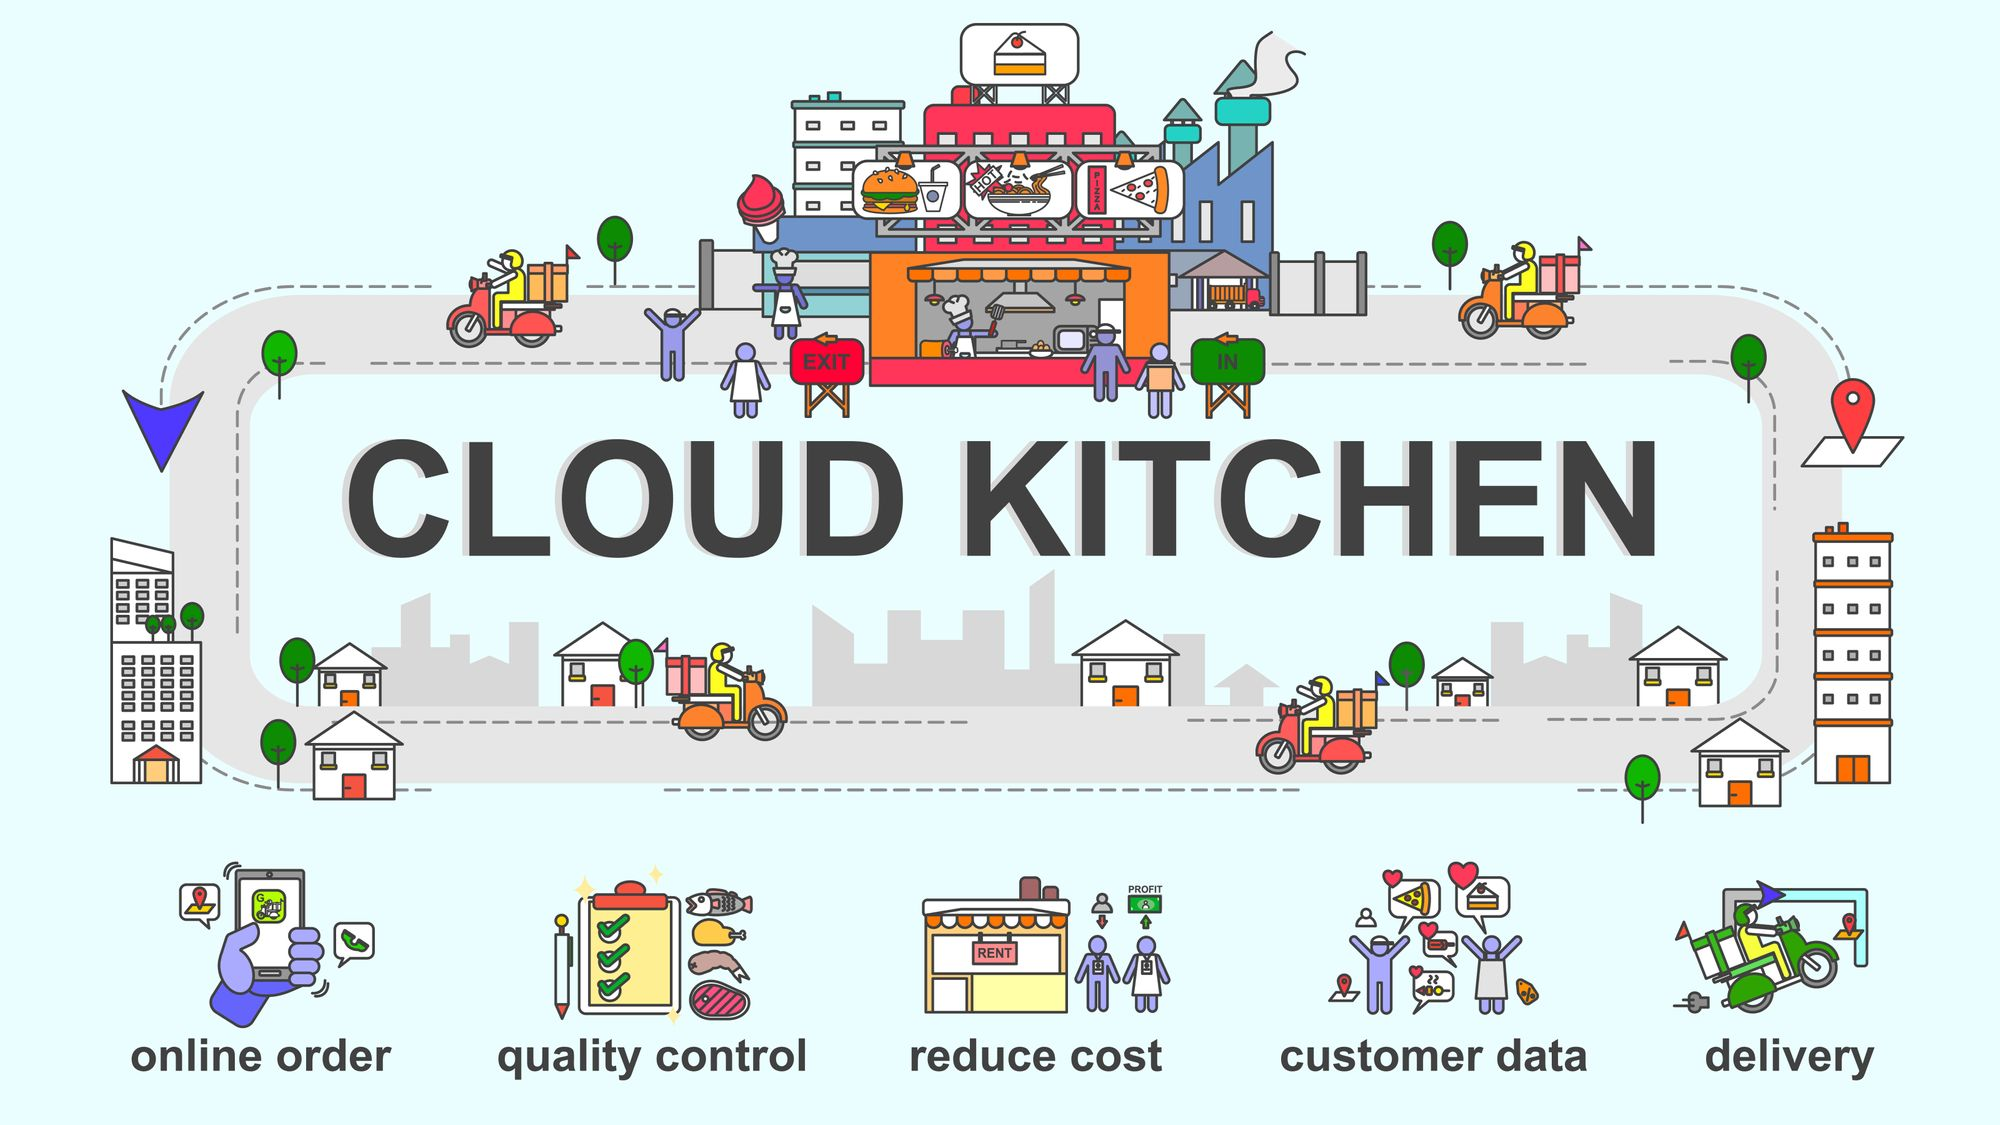 How to Start a Cloud Kitchen Business? A Step-by-Step Guide